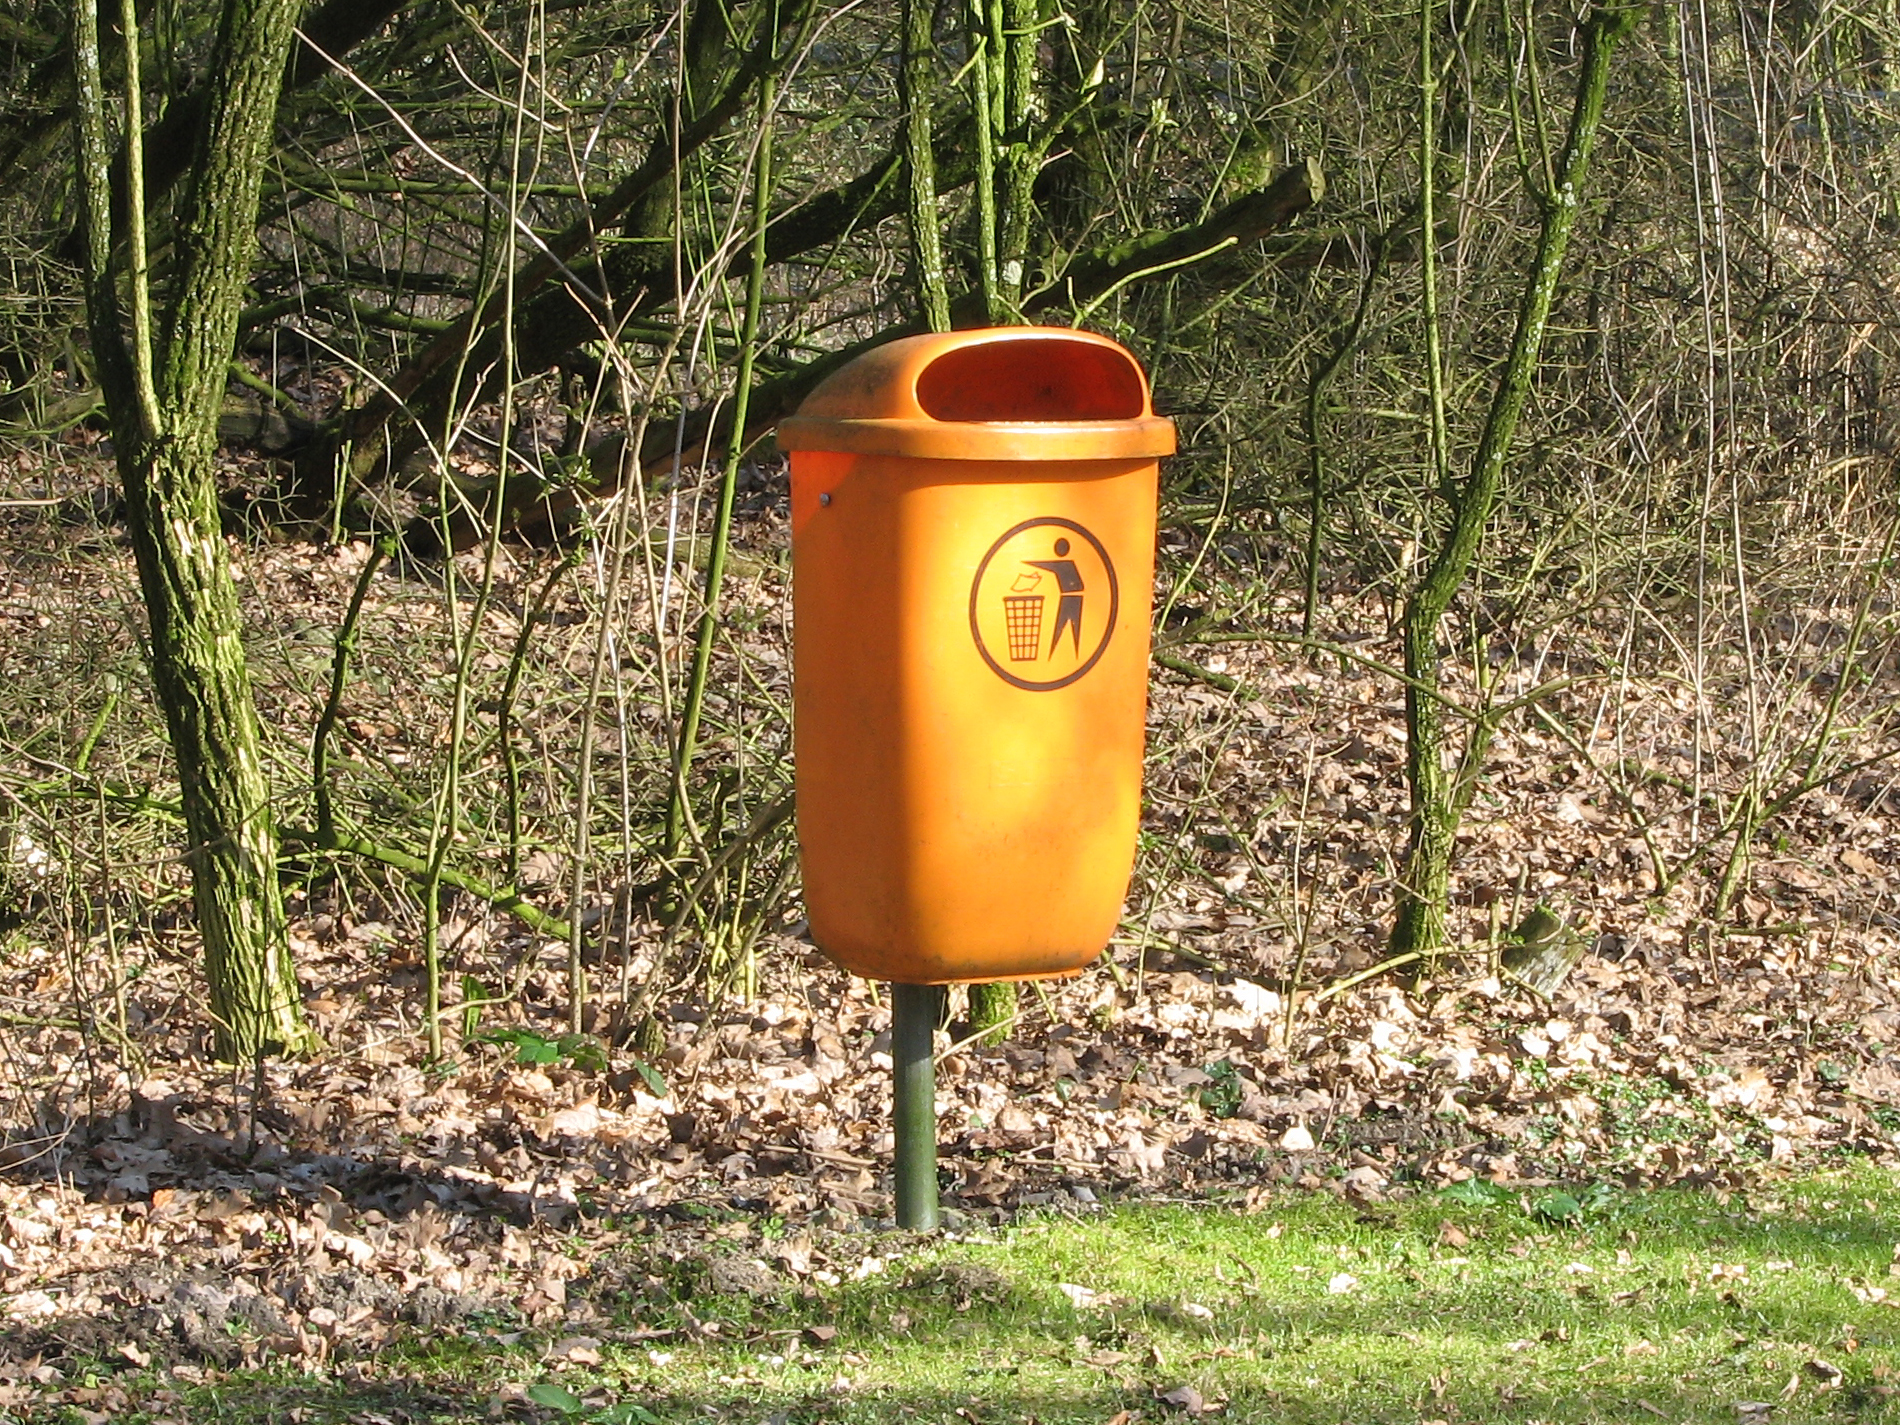 Trashcan in park photo